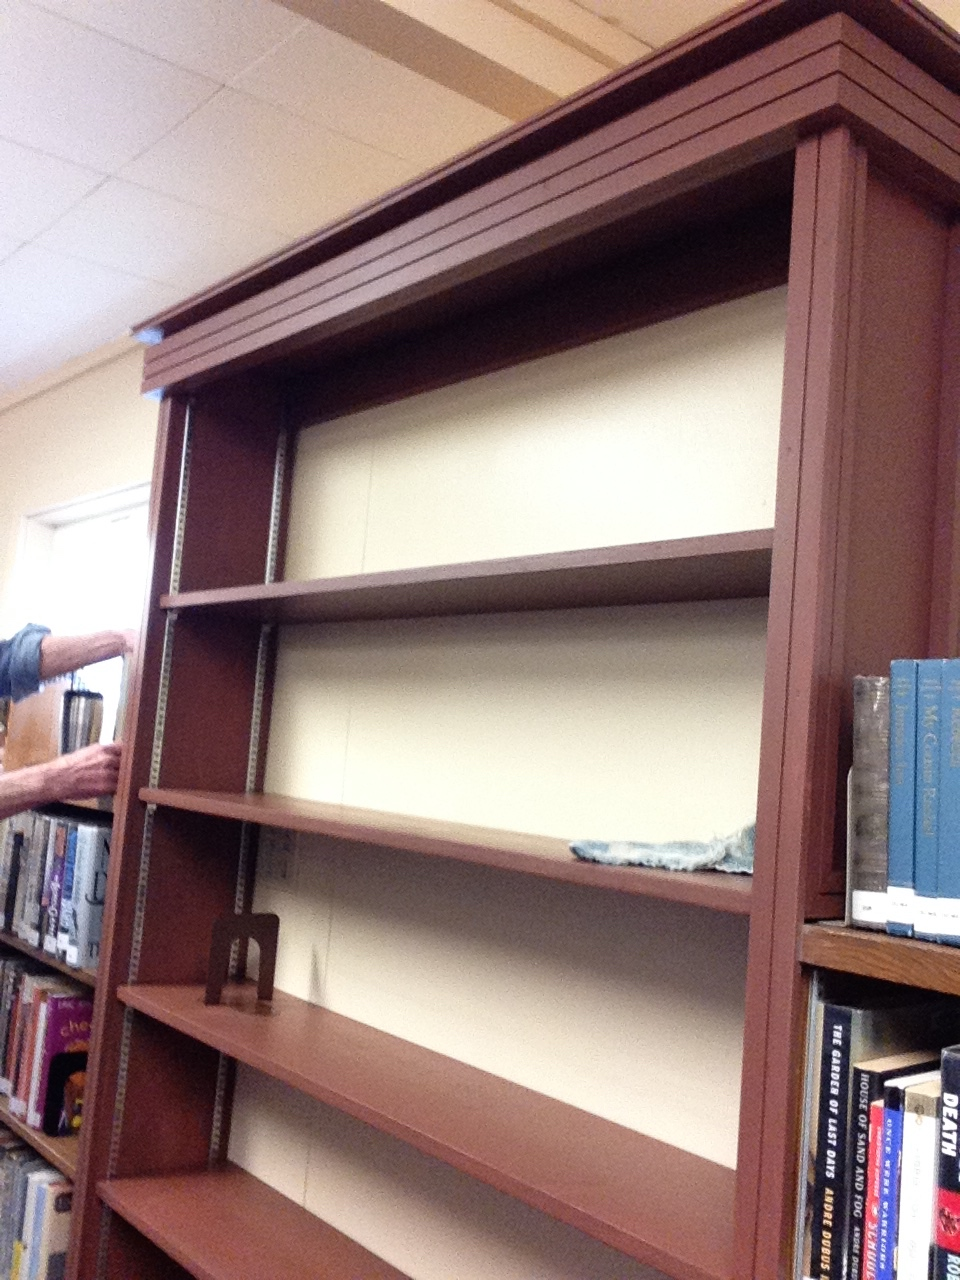 Our new fiction bookshelves- Yes!!